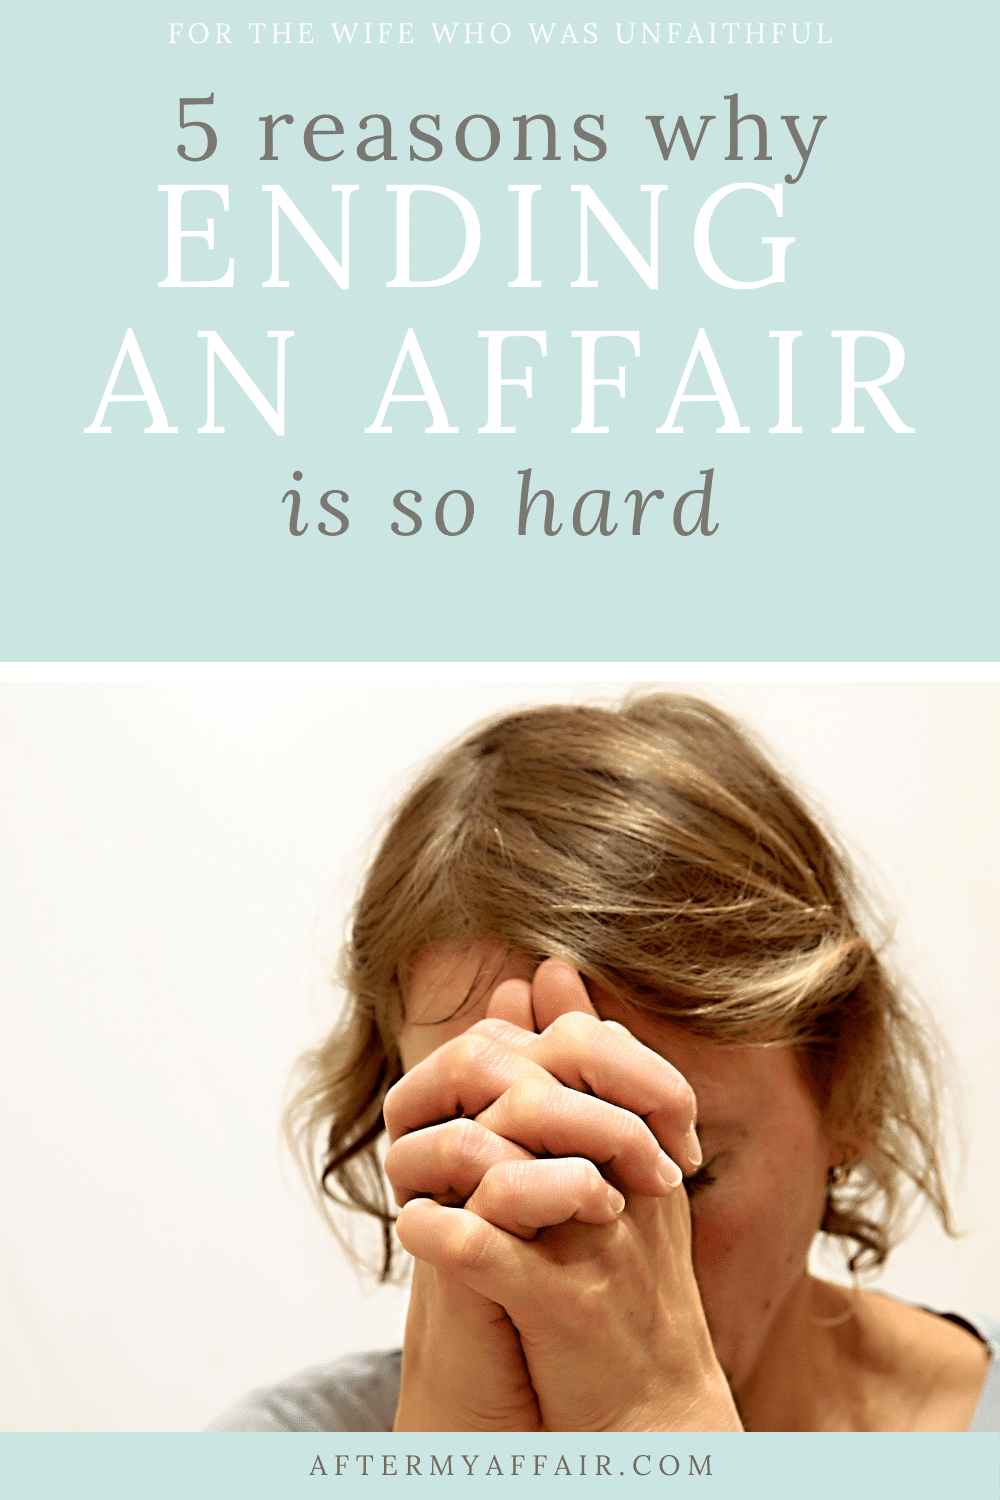 5 Reasons Why Ending An Affair Is So Hard - After My Affair